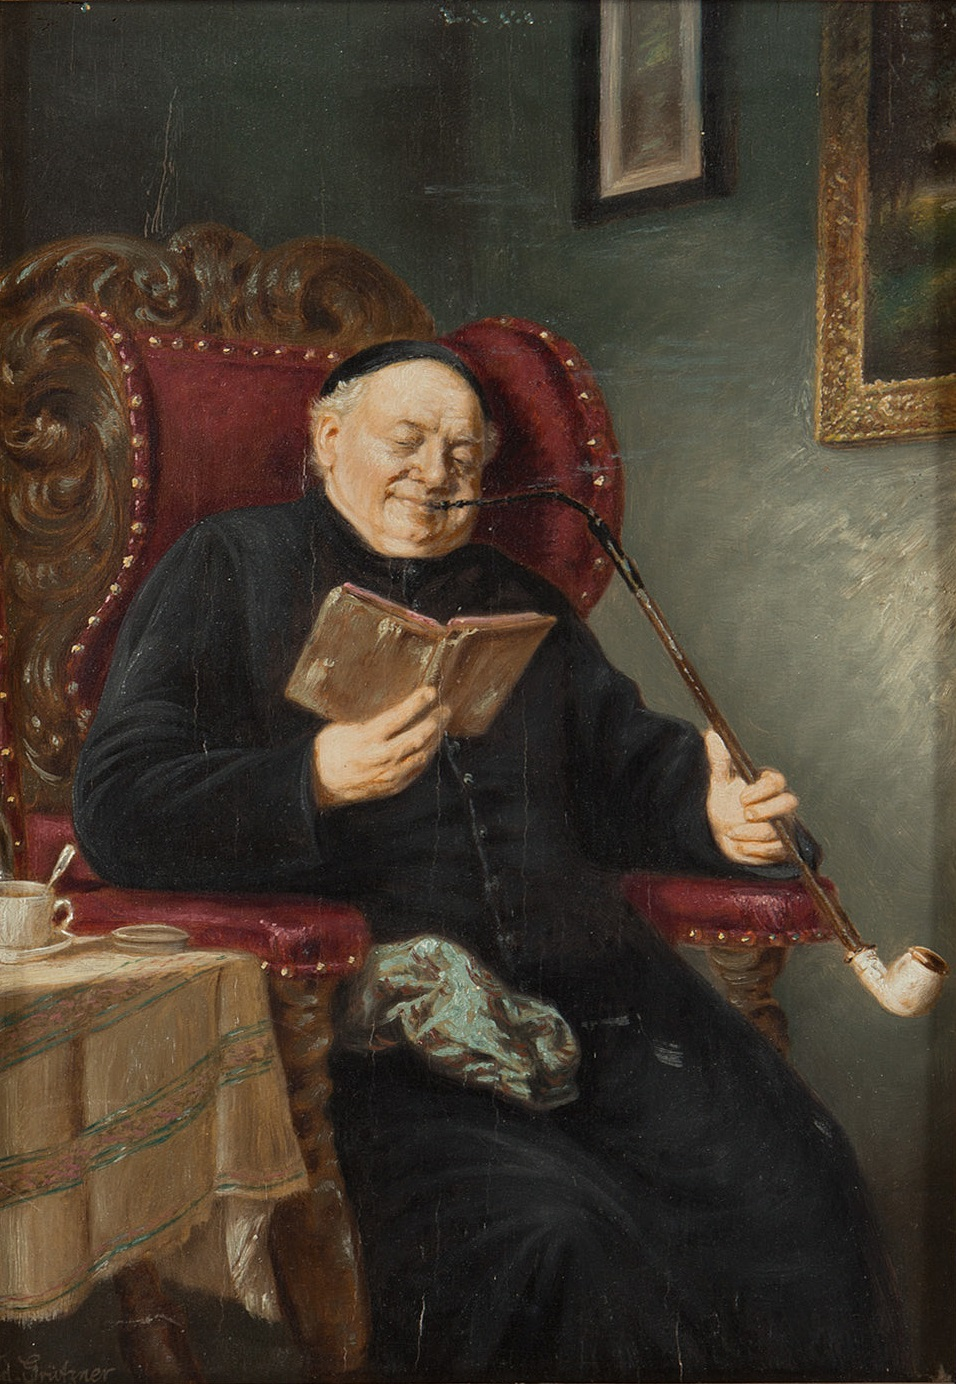 File:Eduard von Grützner Pipe-smoking priest.jpg - Wikimedia Commons